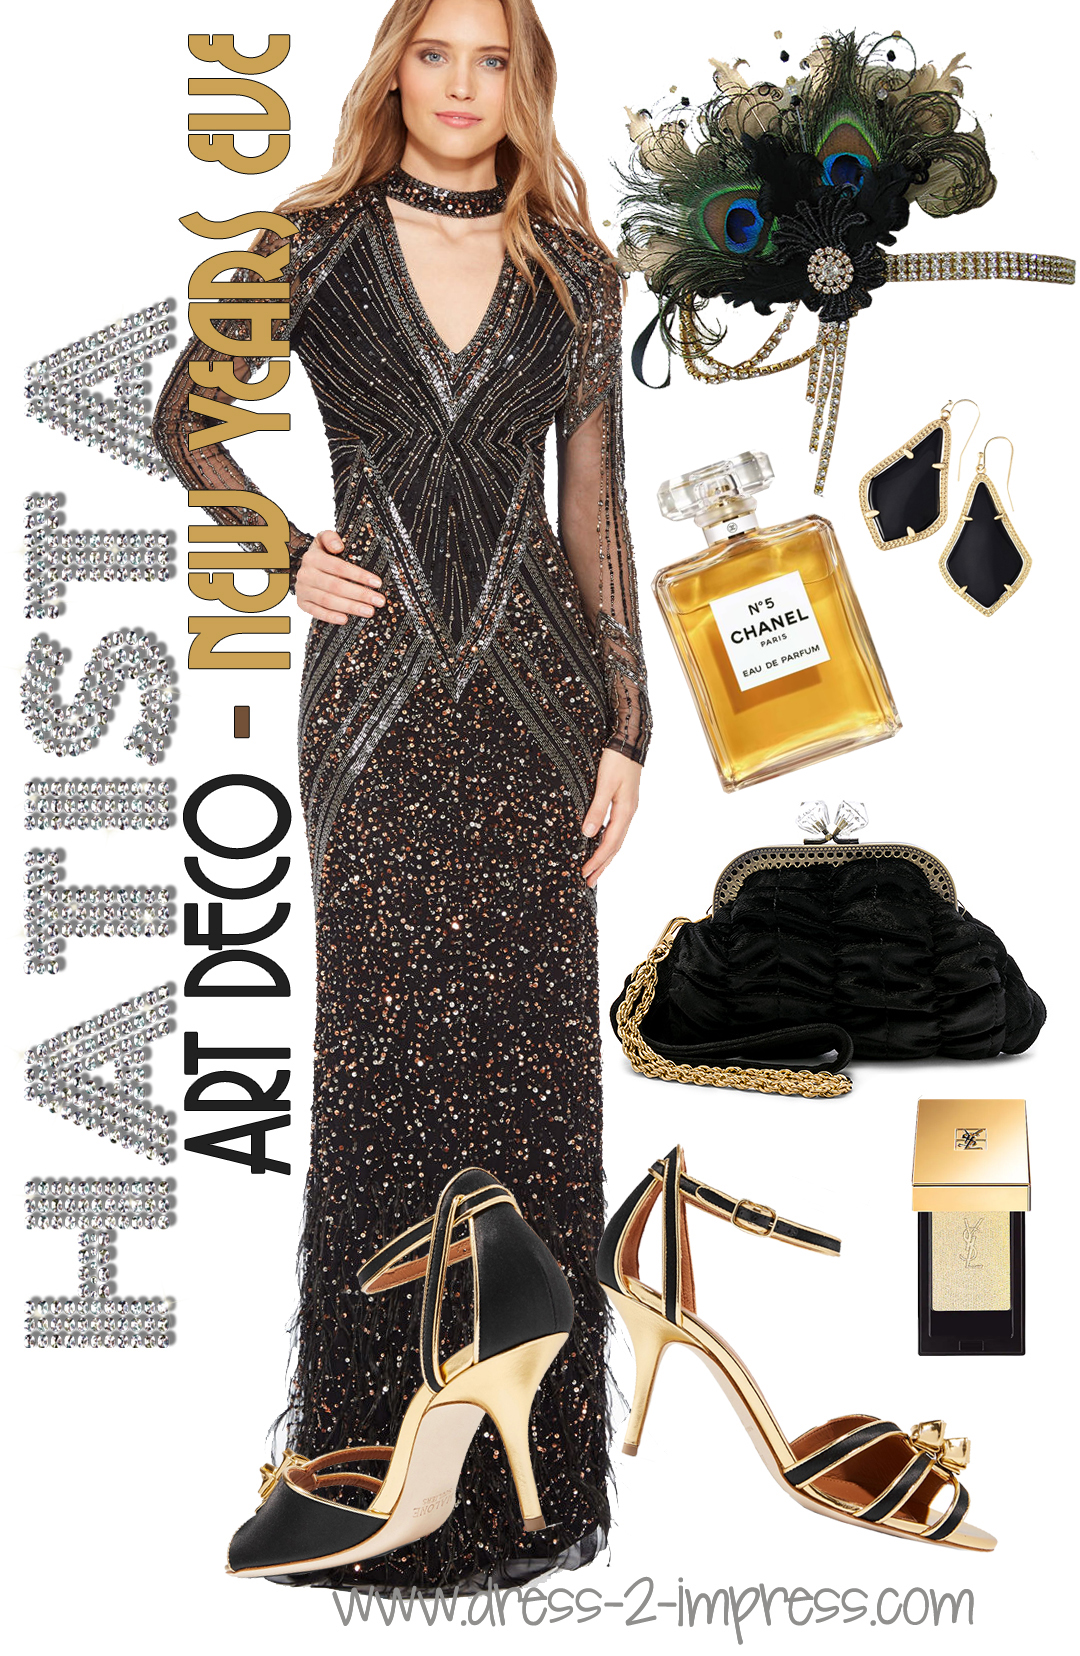 Downton Abbey And Great Gatsby Party Outfit Ideas 2020 Downton Abbey Halloween Party Ideas 2020 1920s Dress Flapper Dress 1920s Outfits What To Wear To 1920s Party What To Wear To A